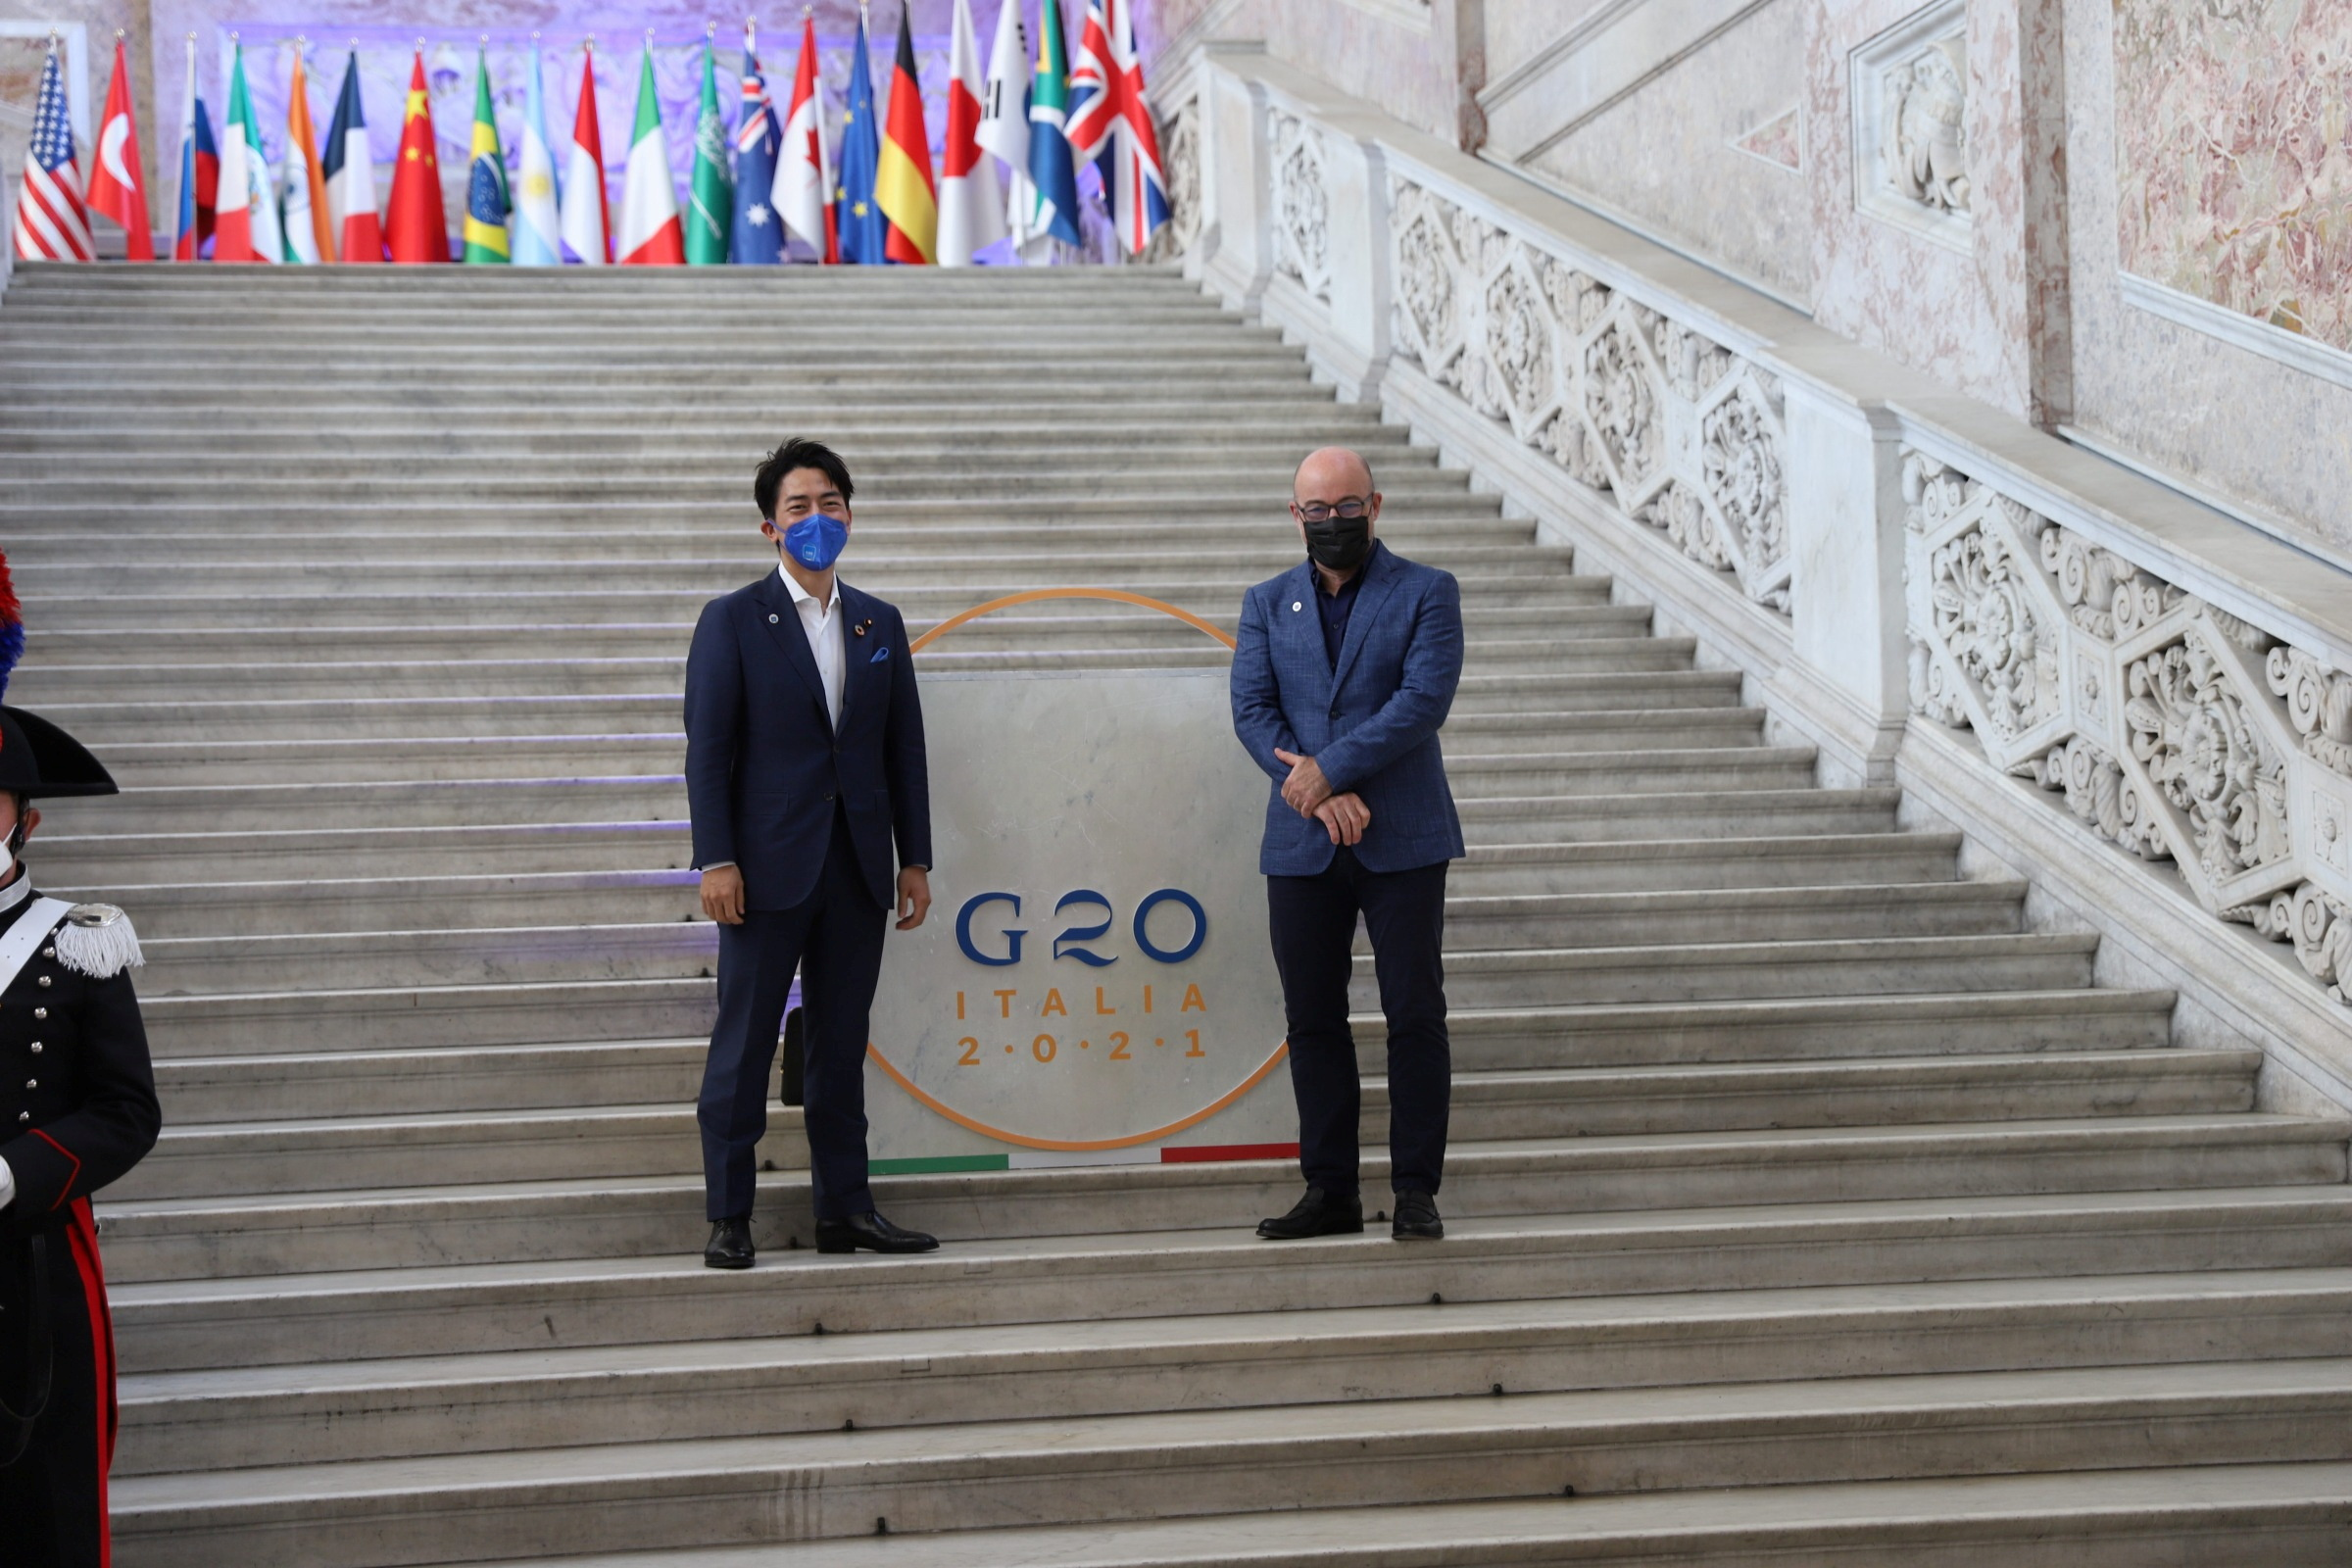 Japan's Environment Minister Shinjiro Koizumi and Italy's Ecological Transition Minister Roberto Cingolani pose for a photograph at the start of the G20 Environment, Climate and Energy Ministers' Meeting in Naples, Italy, July 22, 2021. G20Italy/Handout via REUTERS